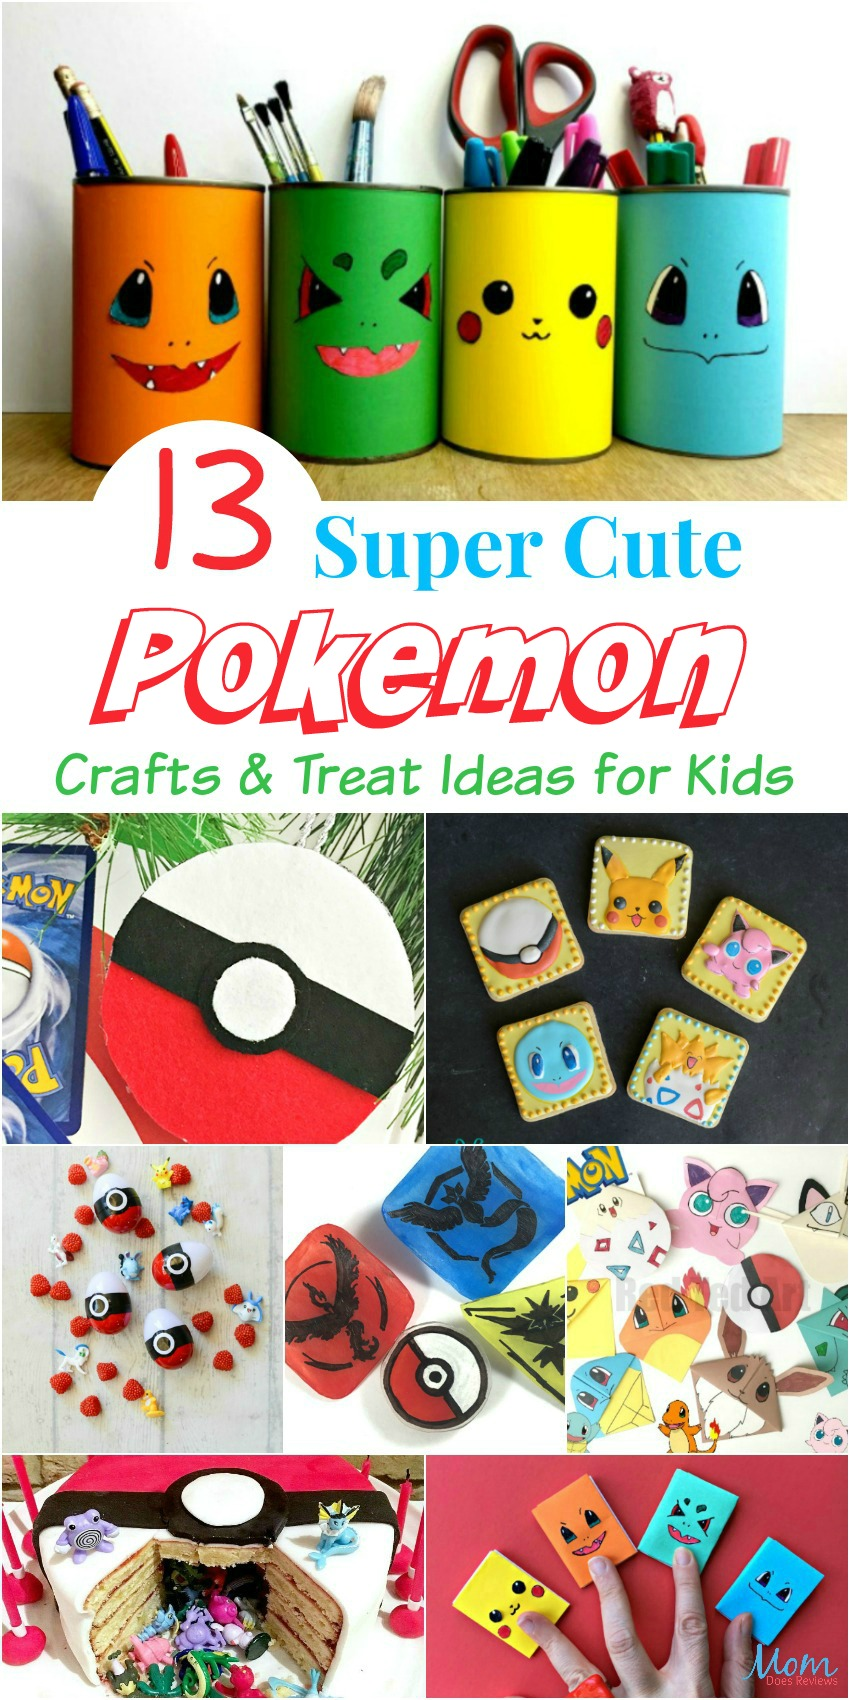 13 Super Cute Pokemon Crafts & Treat Ideas for Kids #funstuff #pokemon #crafts #pikachu